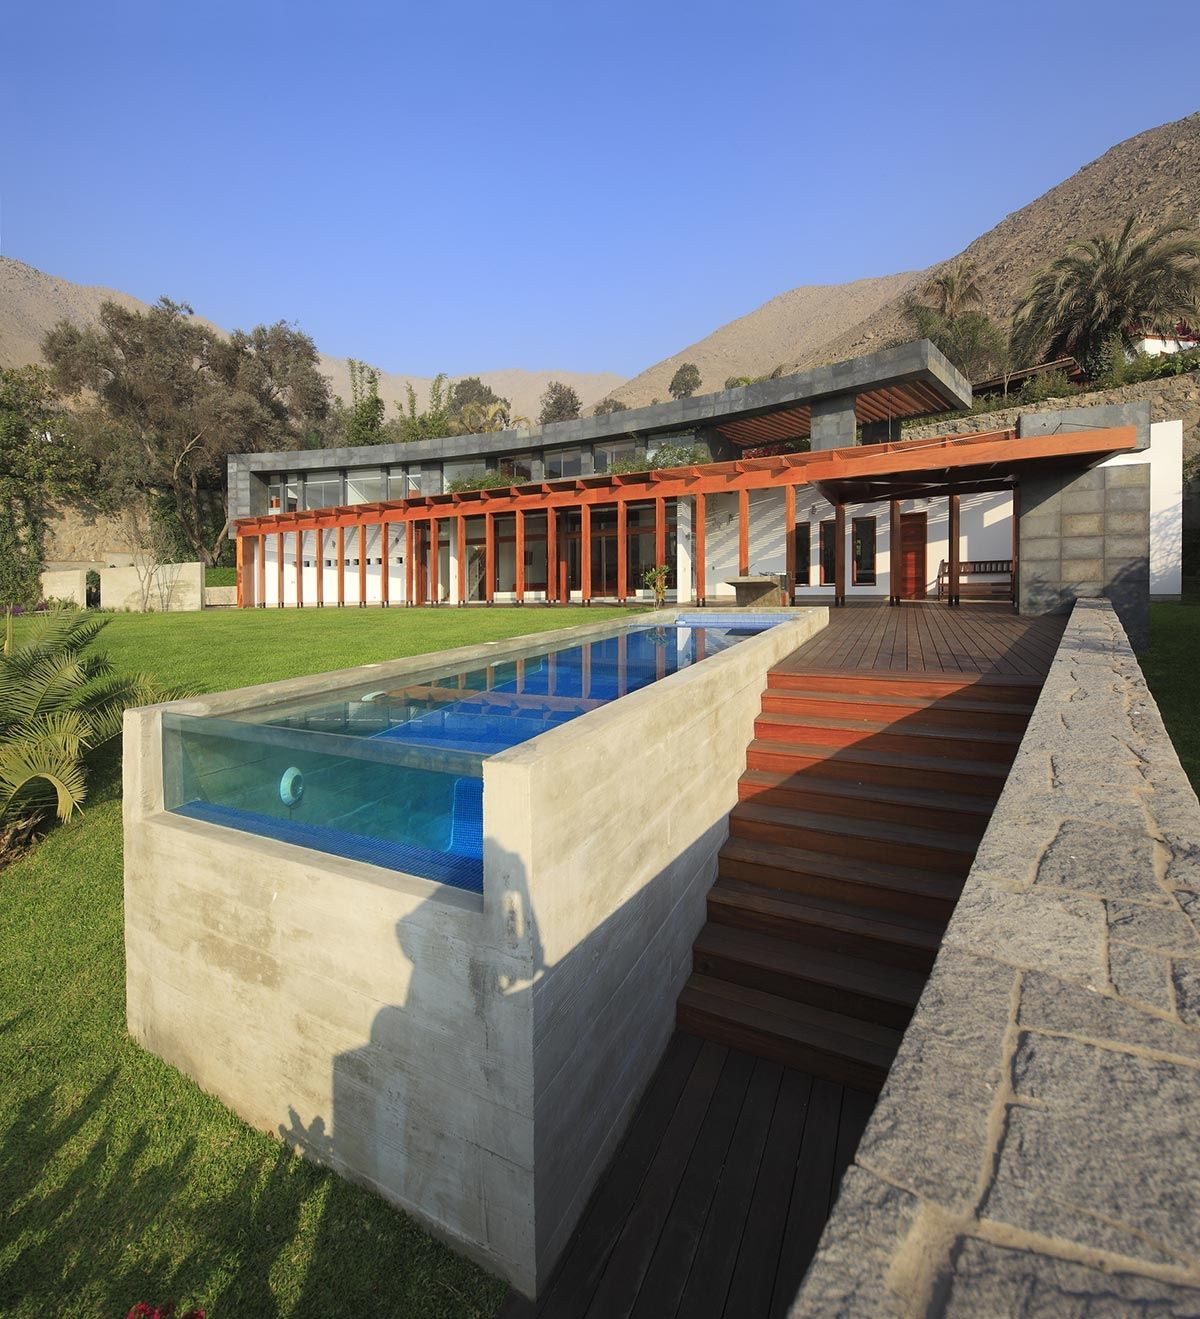 55 Most Awesome Swimming Pool Designs on the Planet   Pool designs ...